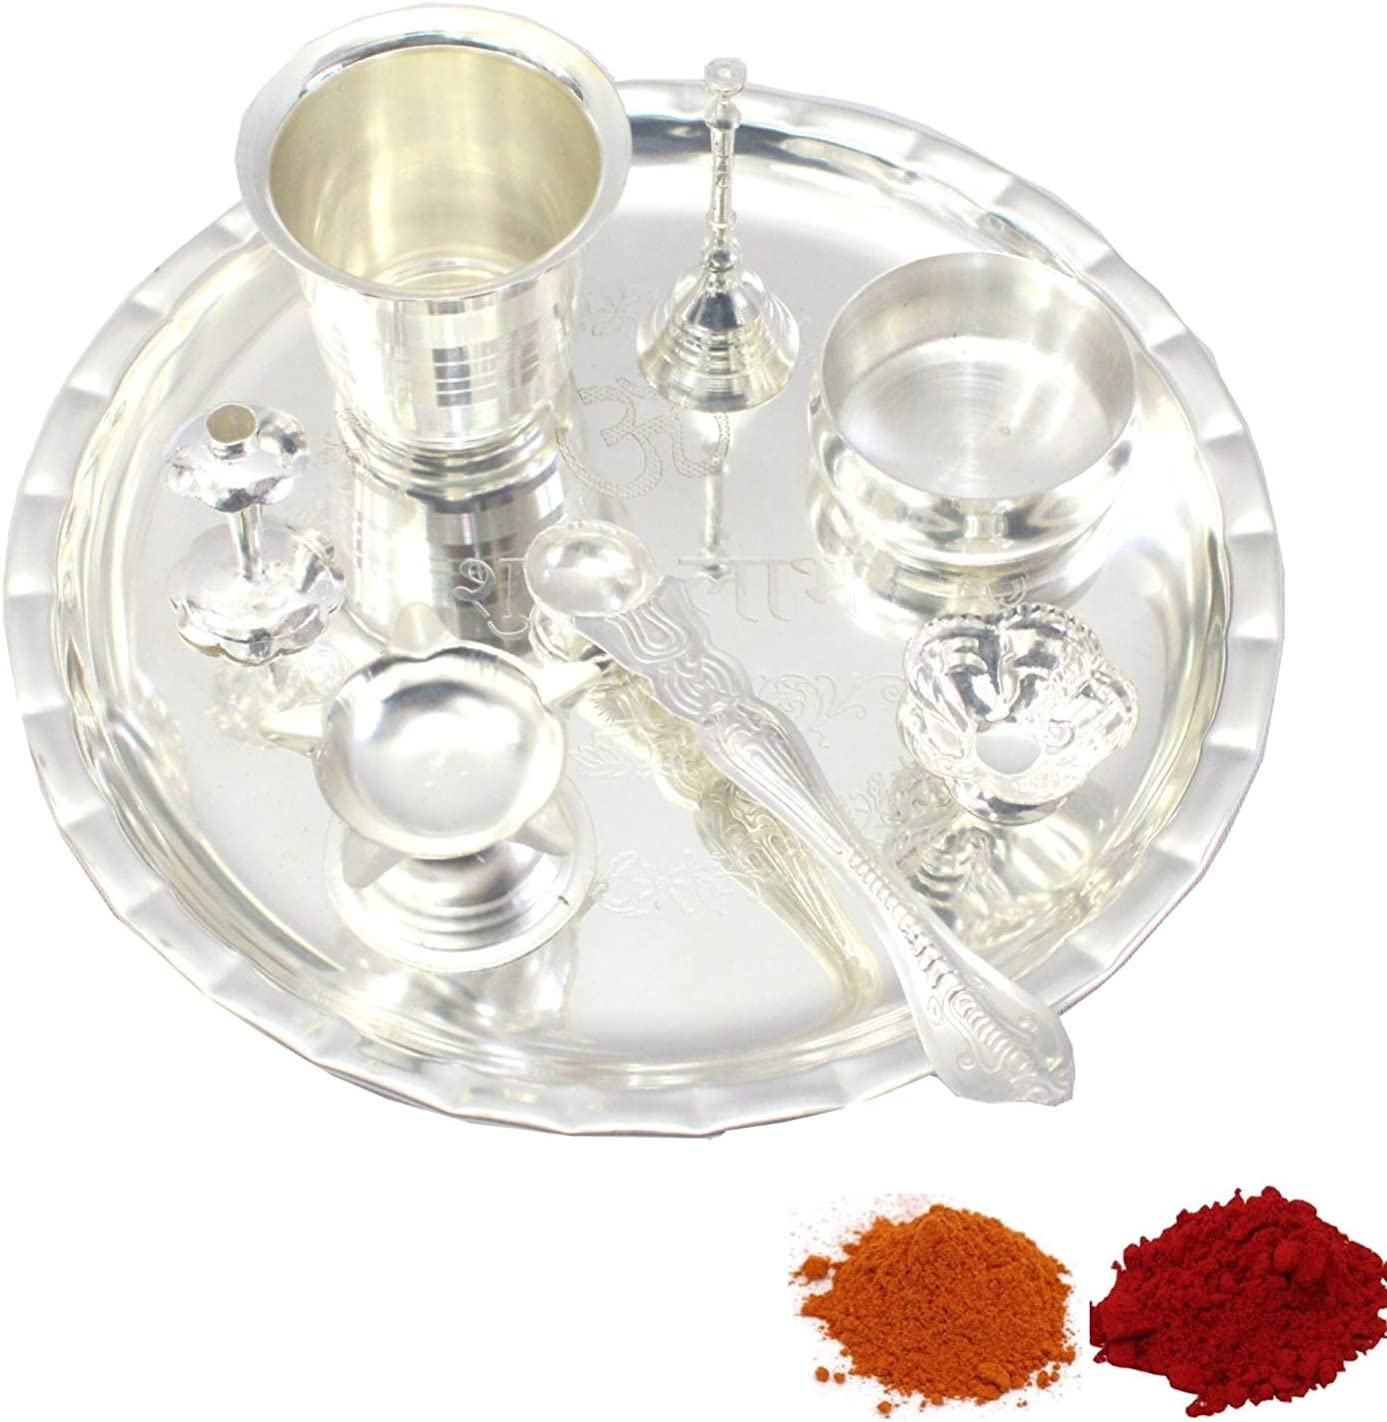 NOBILITY Silver Plated Pooja thali Set 08 Inch for Festival Ethnic Puja Thali Gift for Diwali, Home, Temple, Office, Wedding Gift